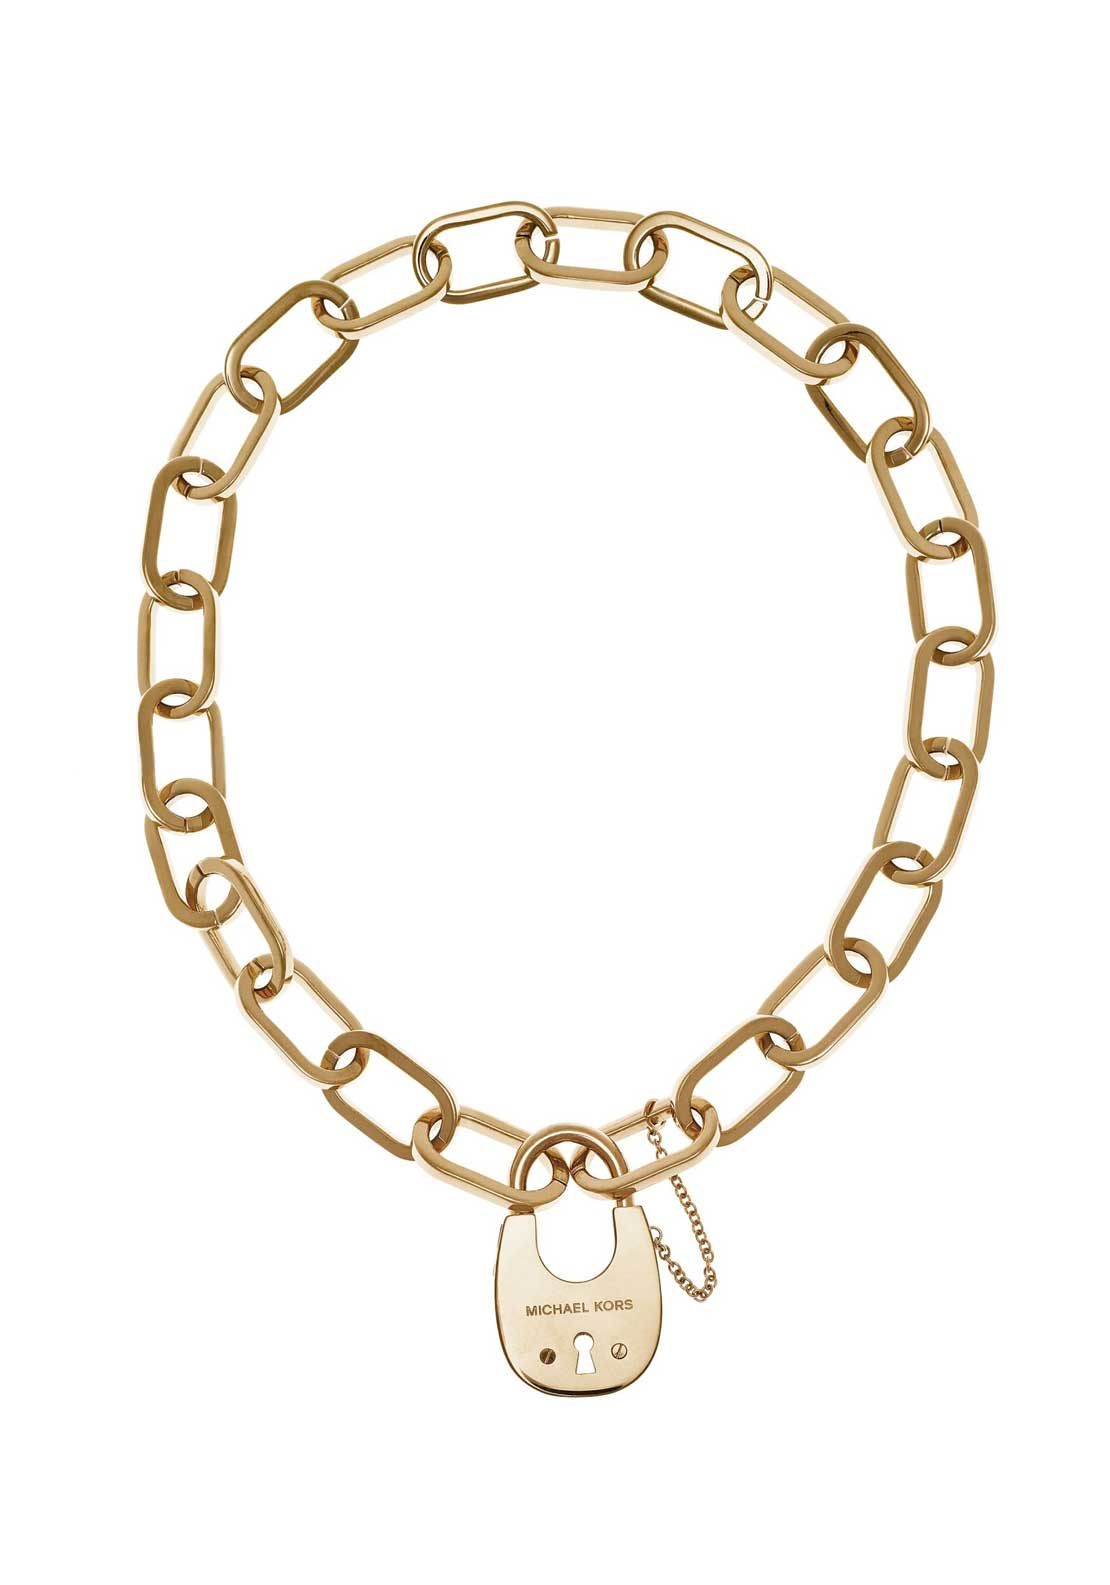 Michael Kors Heavy Padlock Necklace, Gold